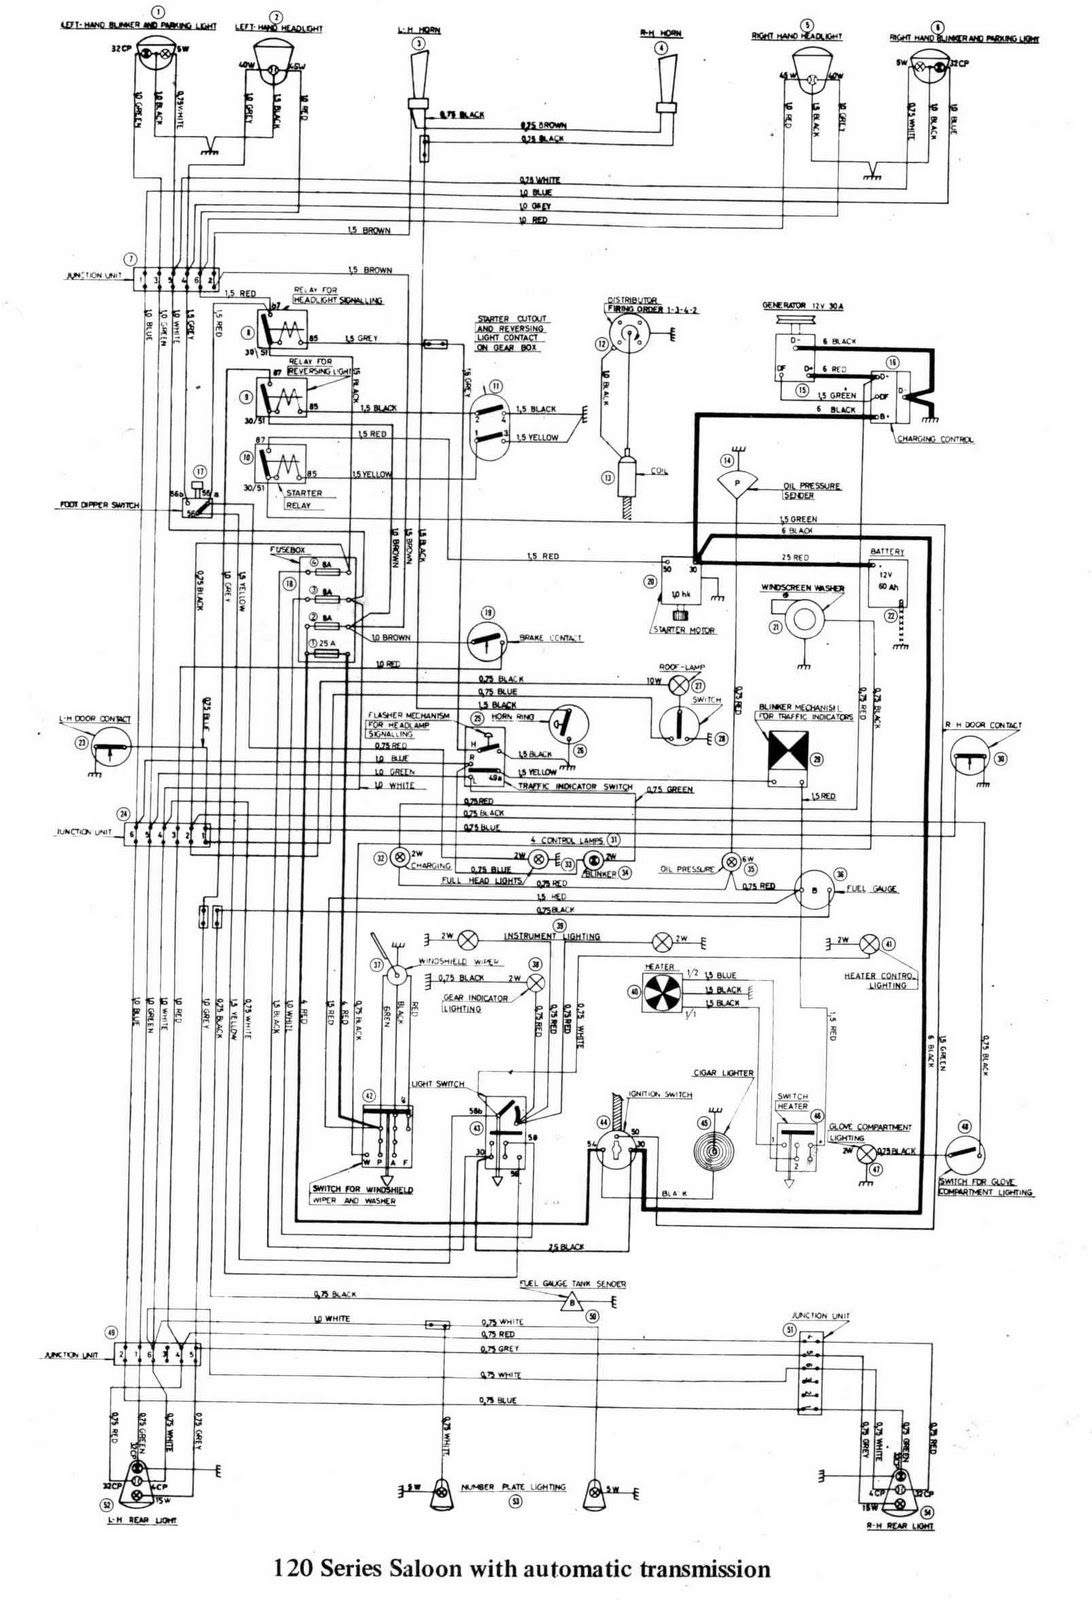 2004 volvo xc70 headlight wiring diagram - wiring diagram hard-data -  hard-data.disnar.it  disnar.it